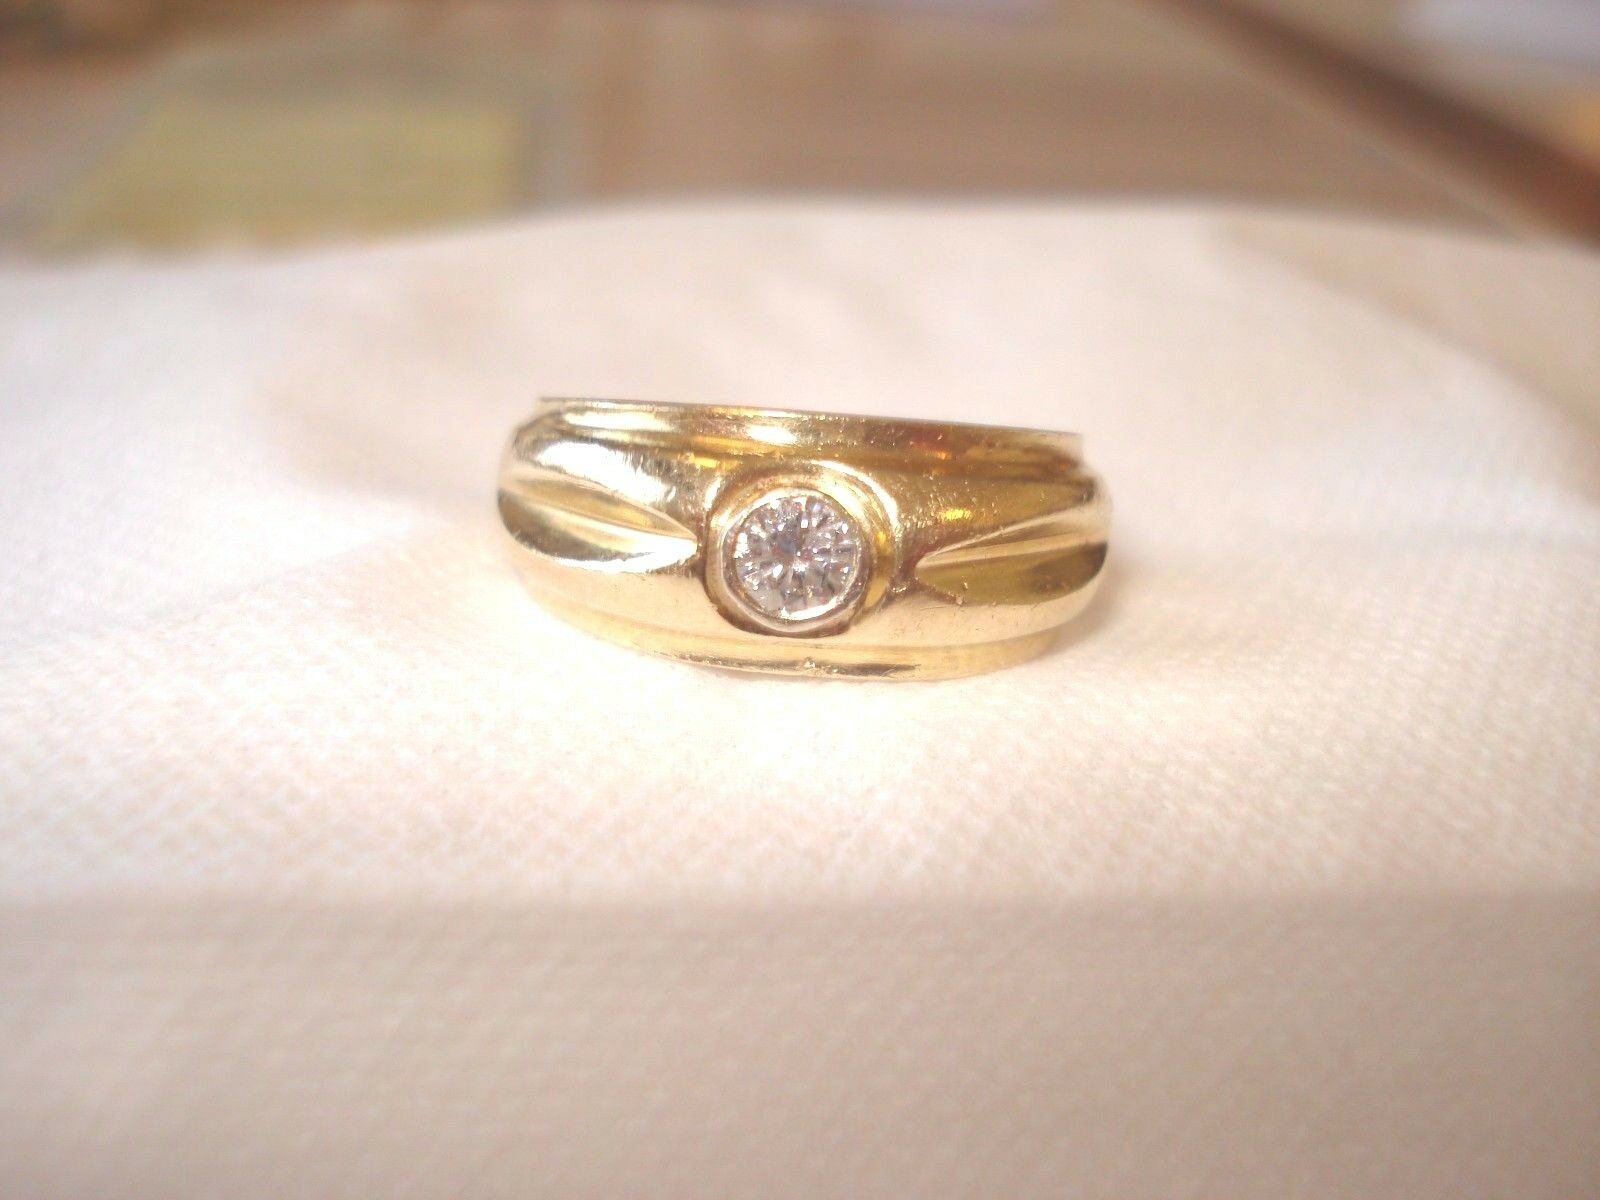 14K Yellow Solid gold Diamond Engagement Ring (.20 ct) Size 6.25 - Grams 5.8